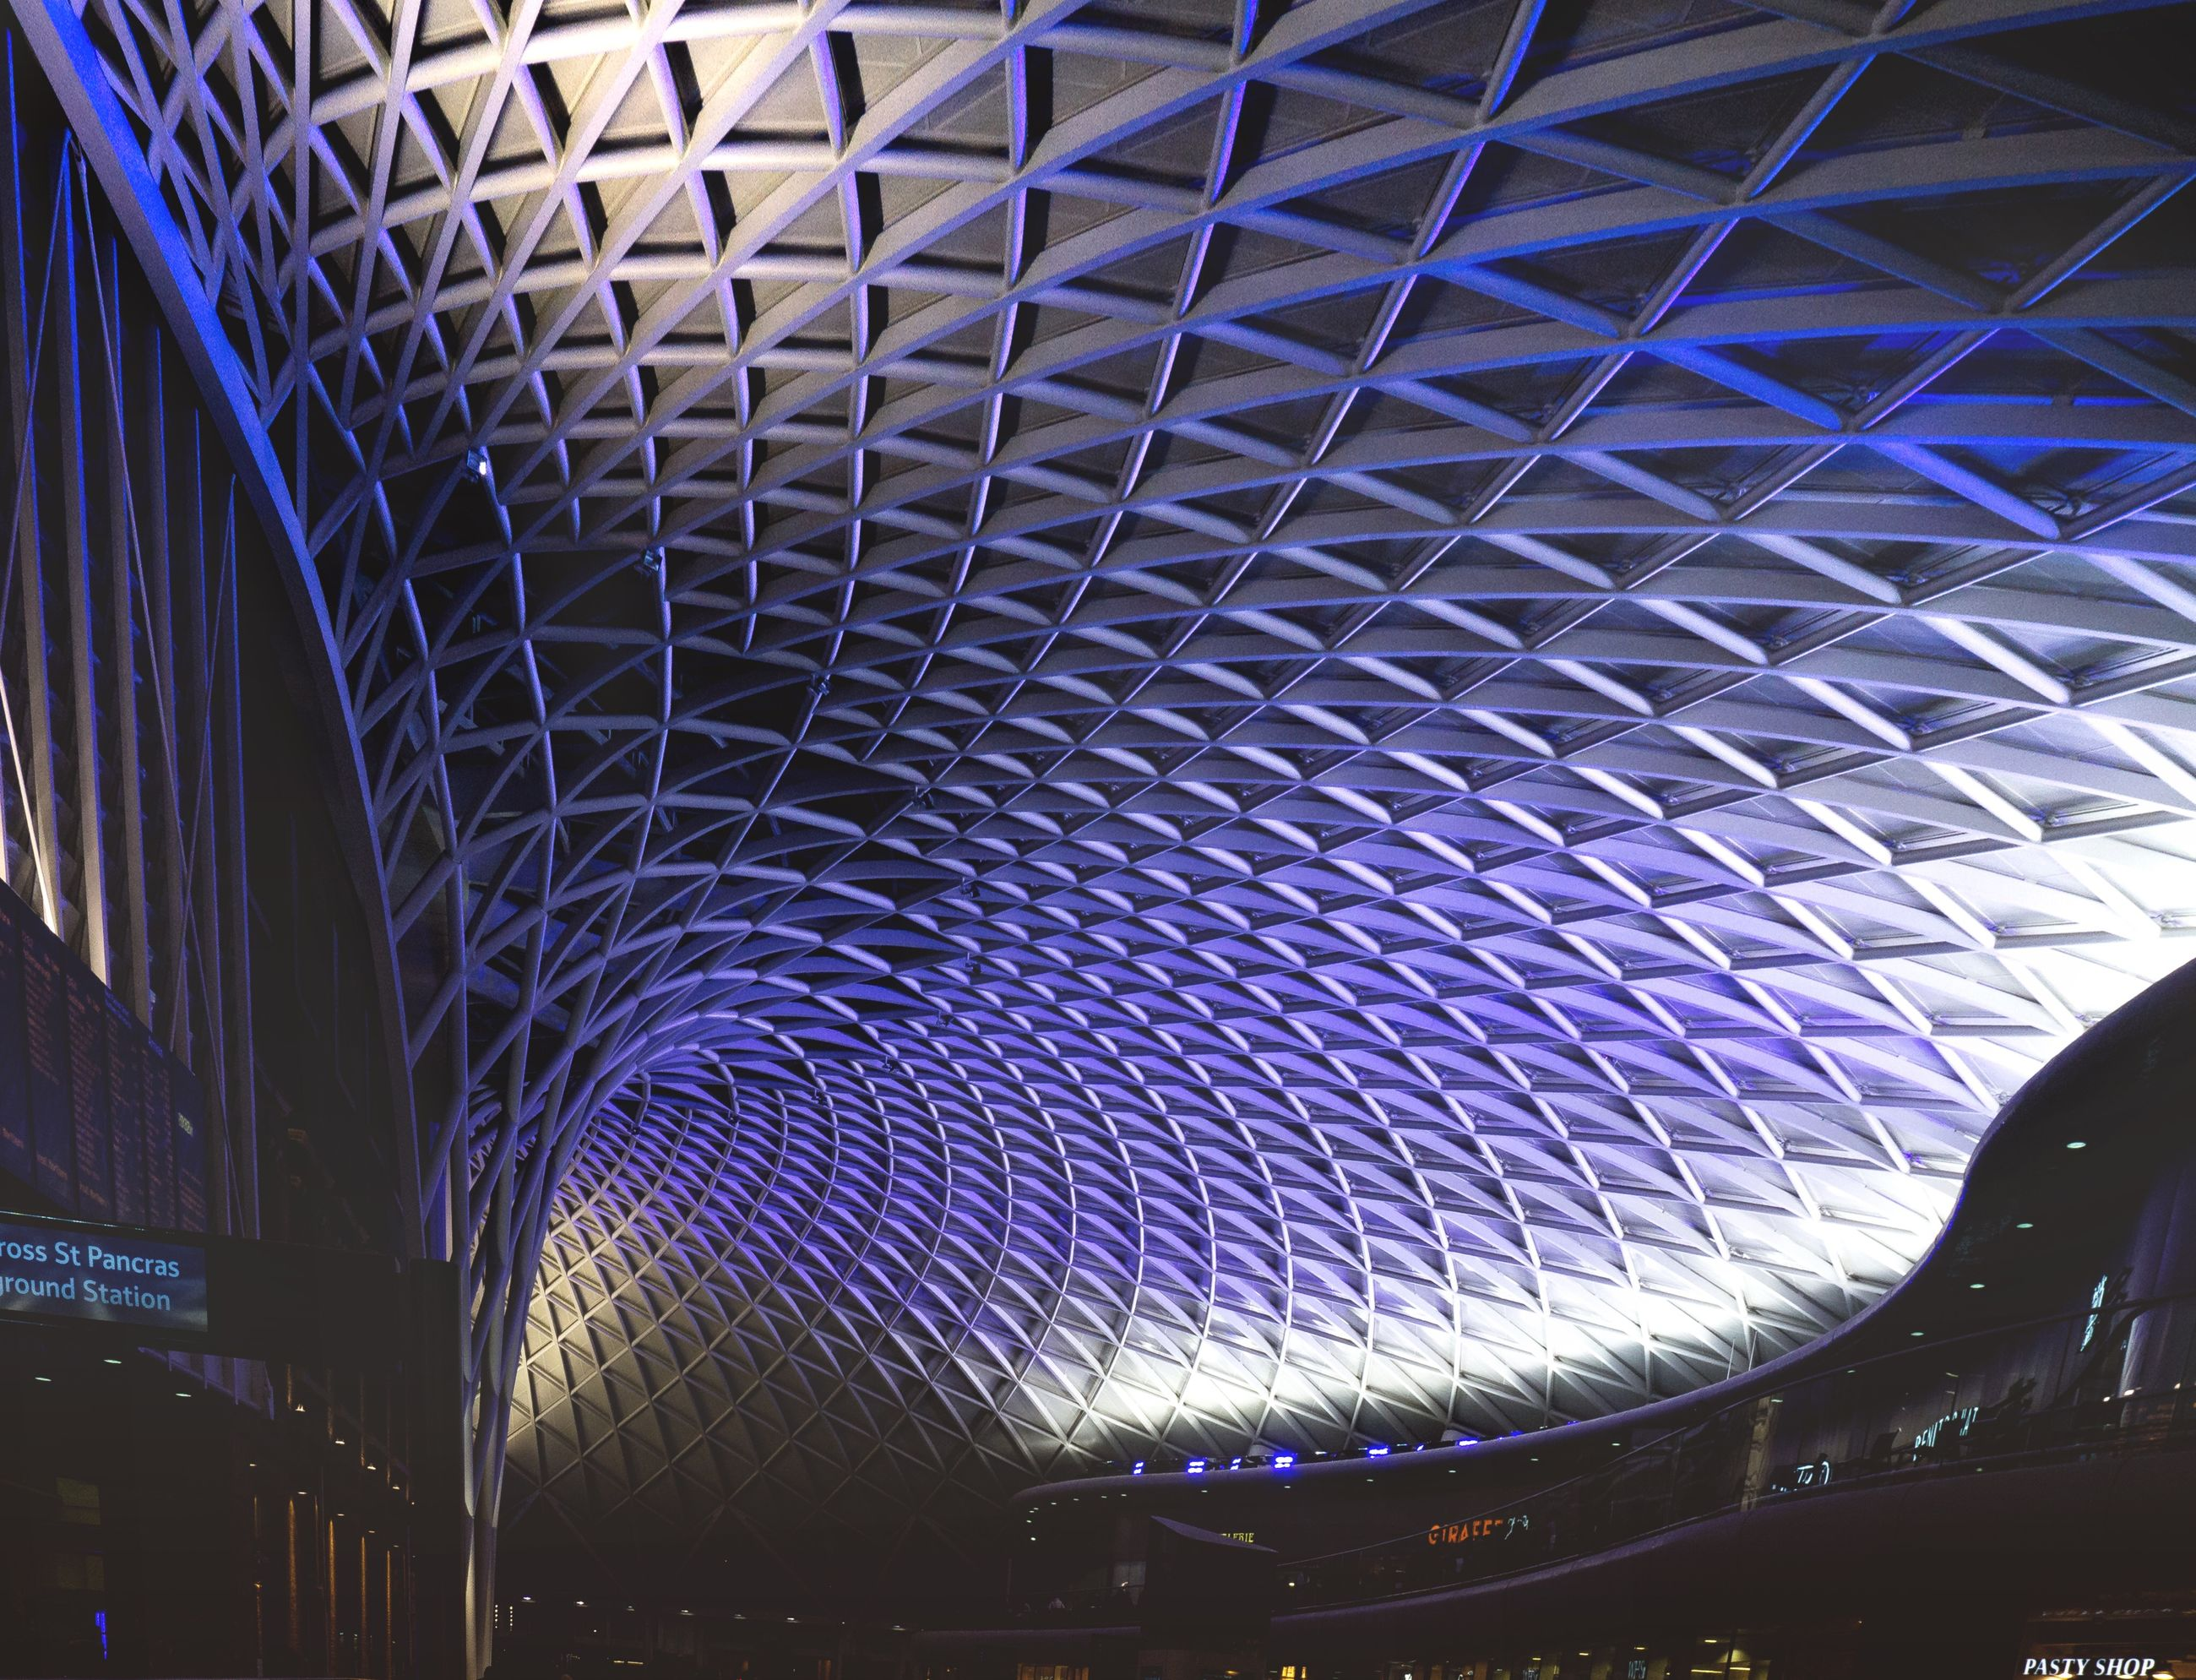 ceiling, pattern, architecture, illuminated, indoors, built structure, modern, lighting equipment, low angle view, no people, night, design, architectural feature, architecture and art, transportation, light, metal, blue, railroad station, purple